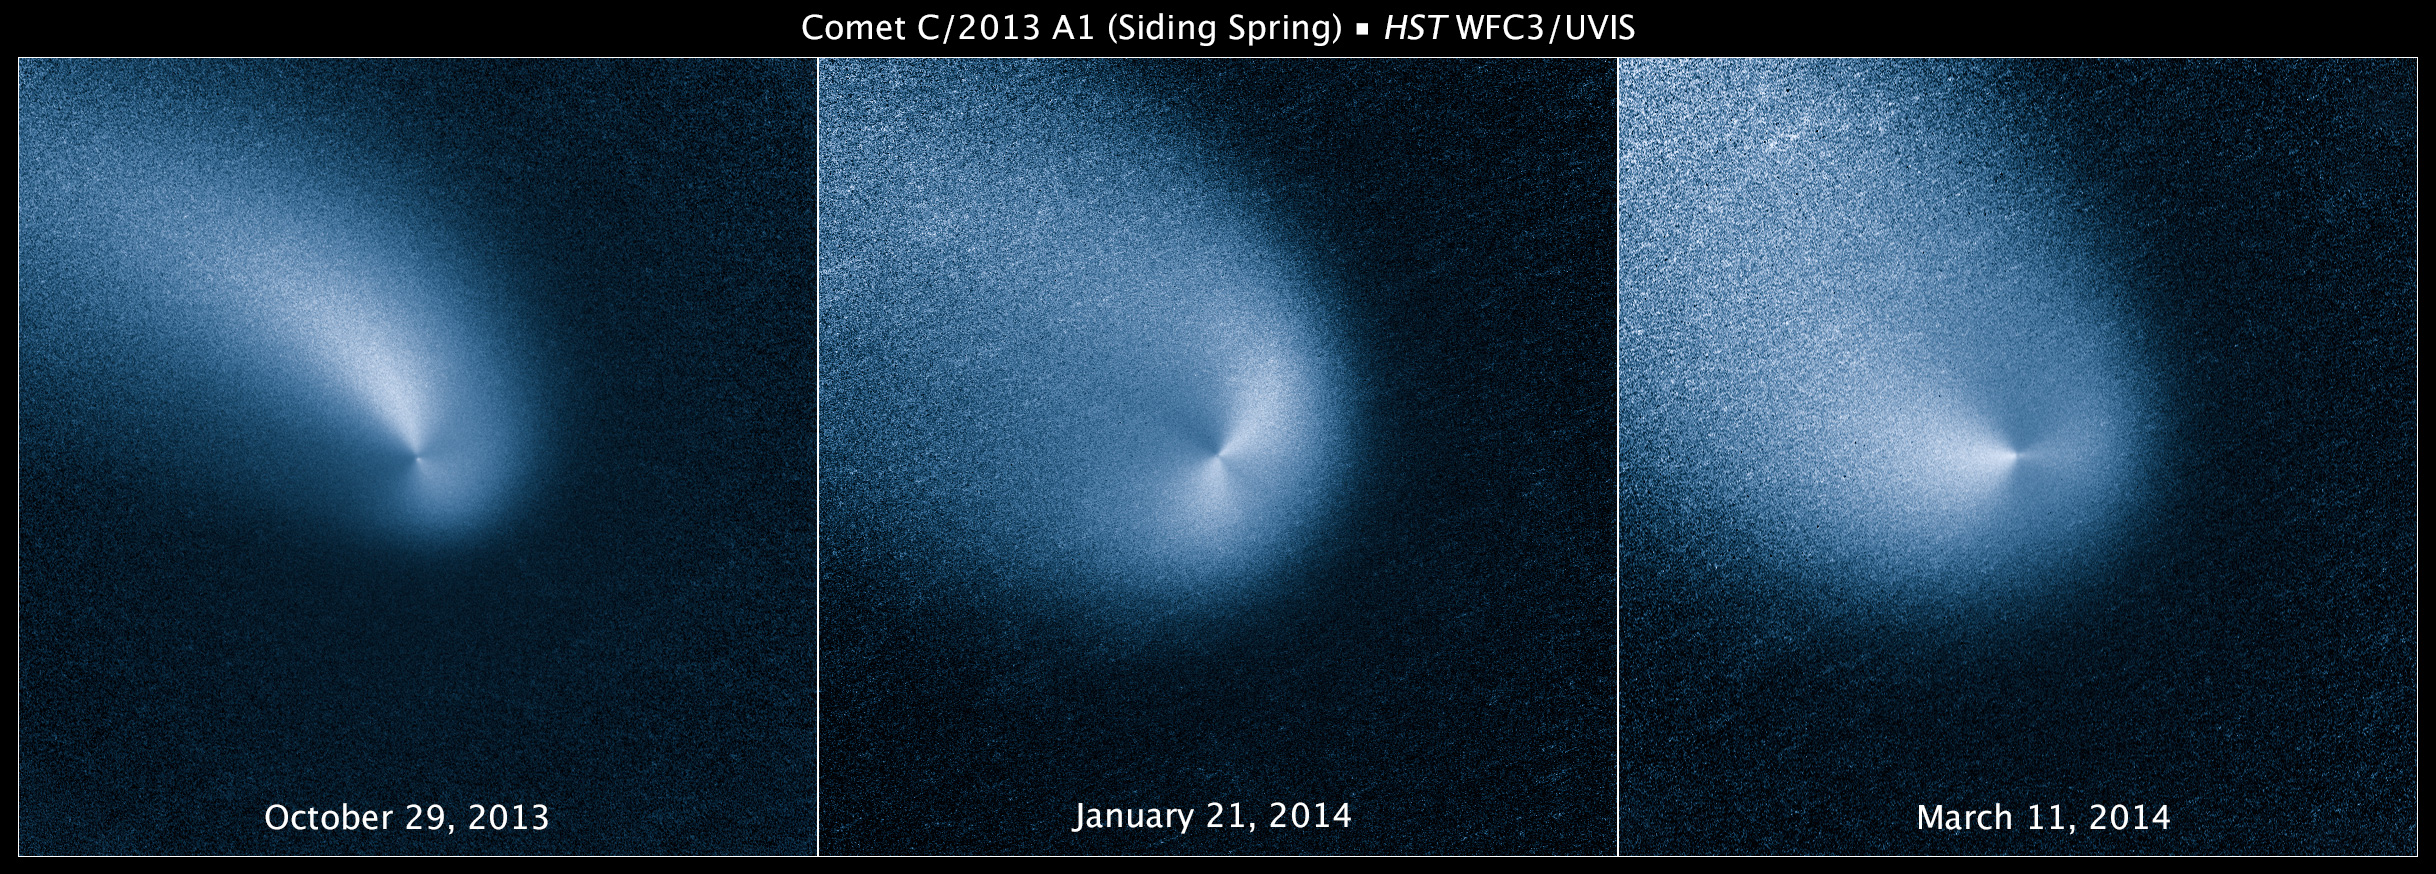 Comet C/2013 A1 Siding Spring: Jets Seen by Hubble